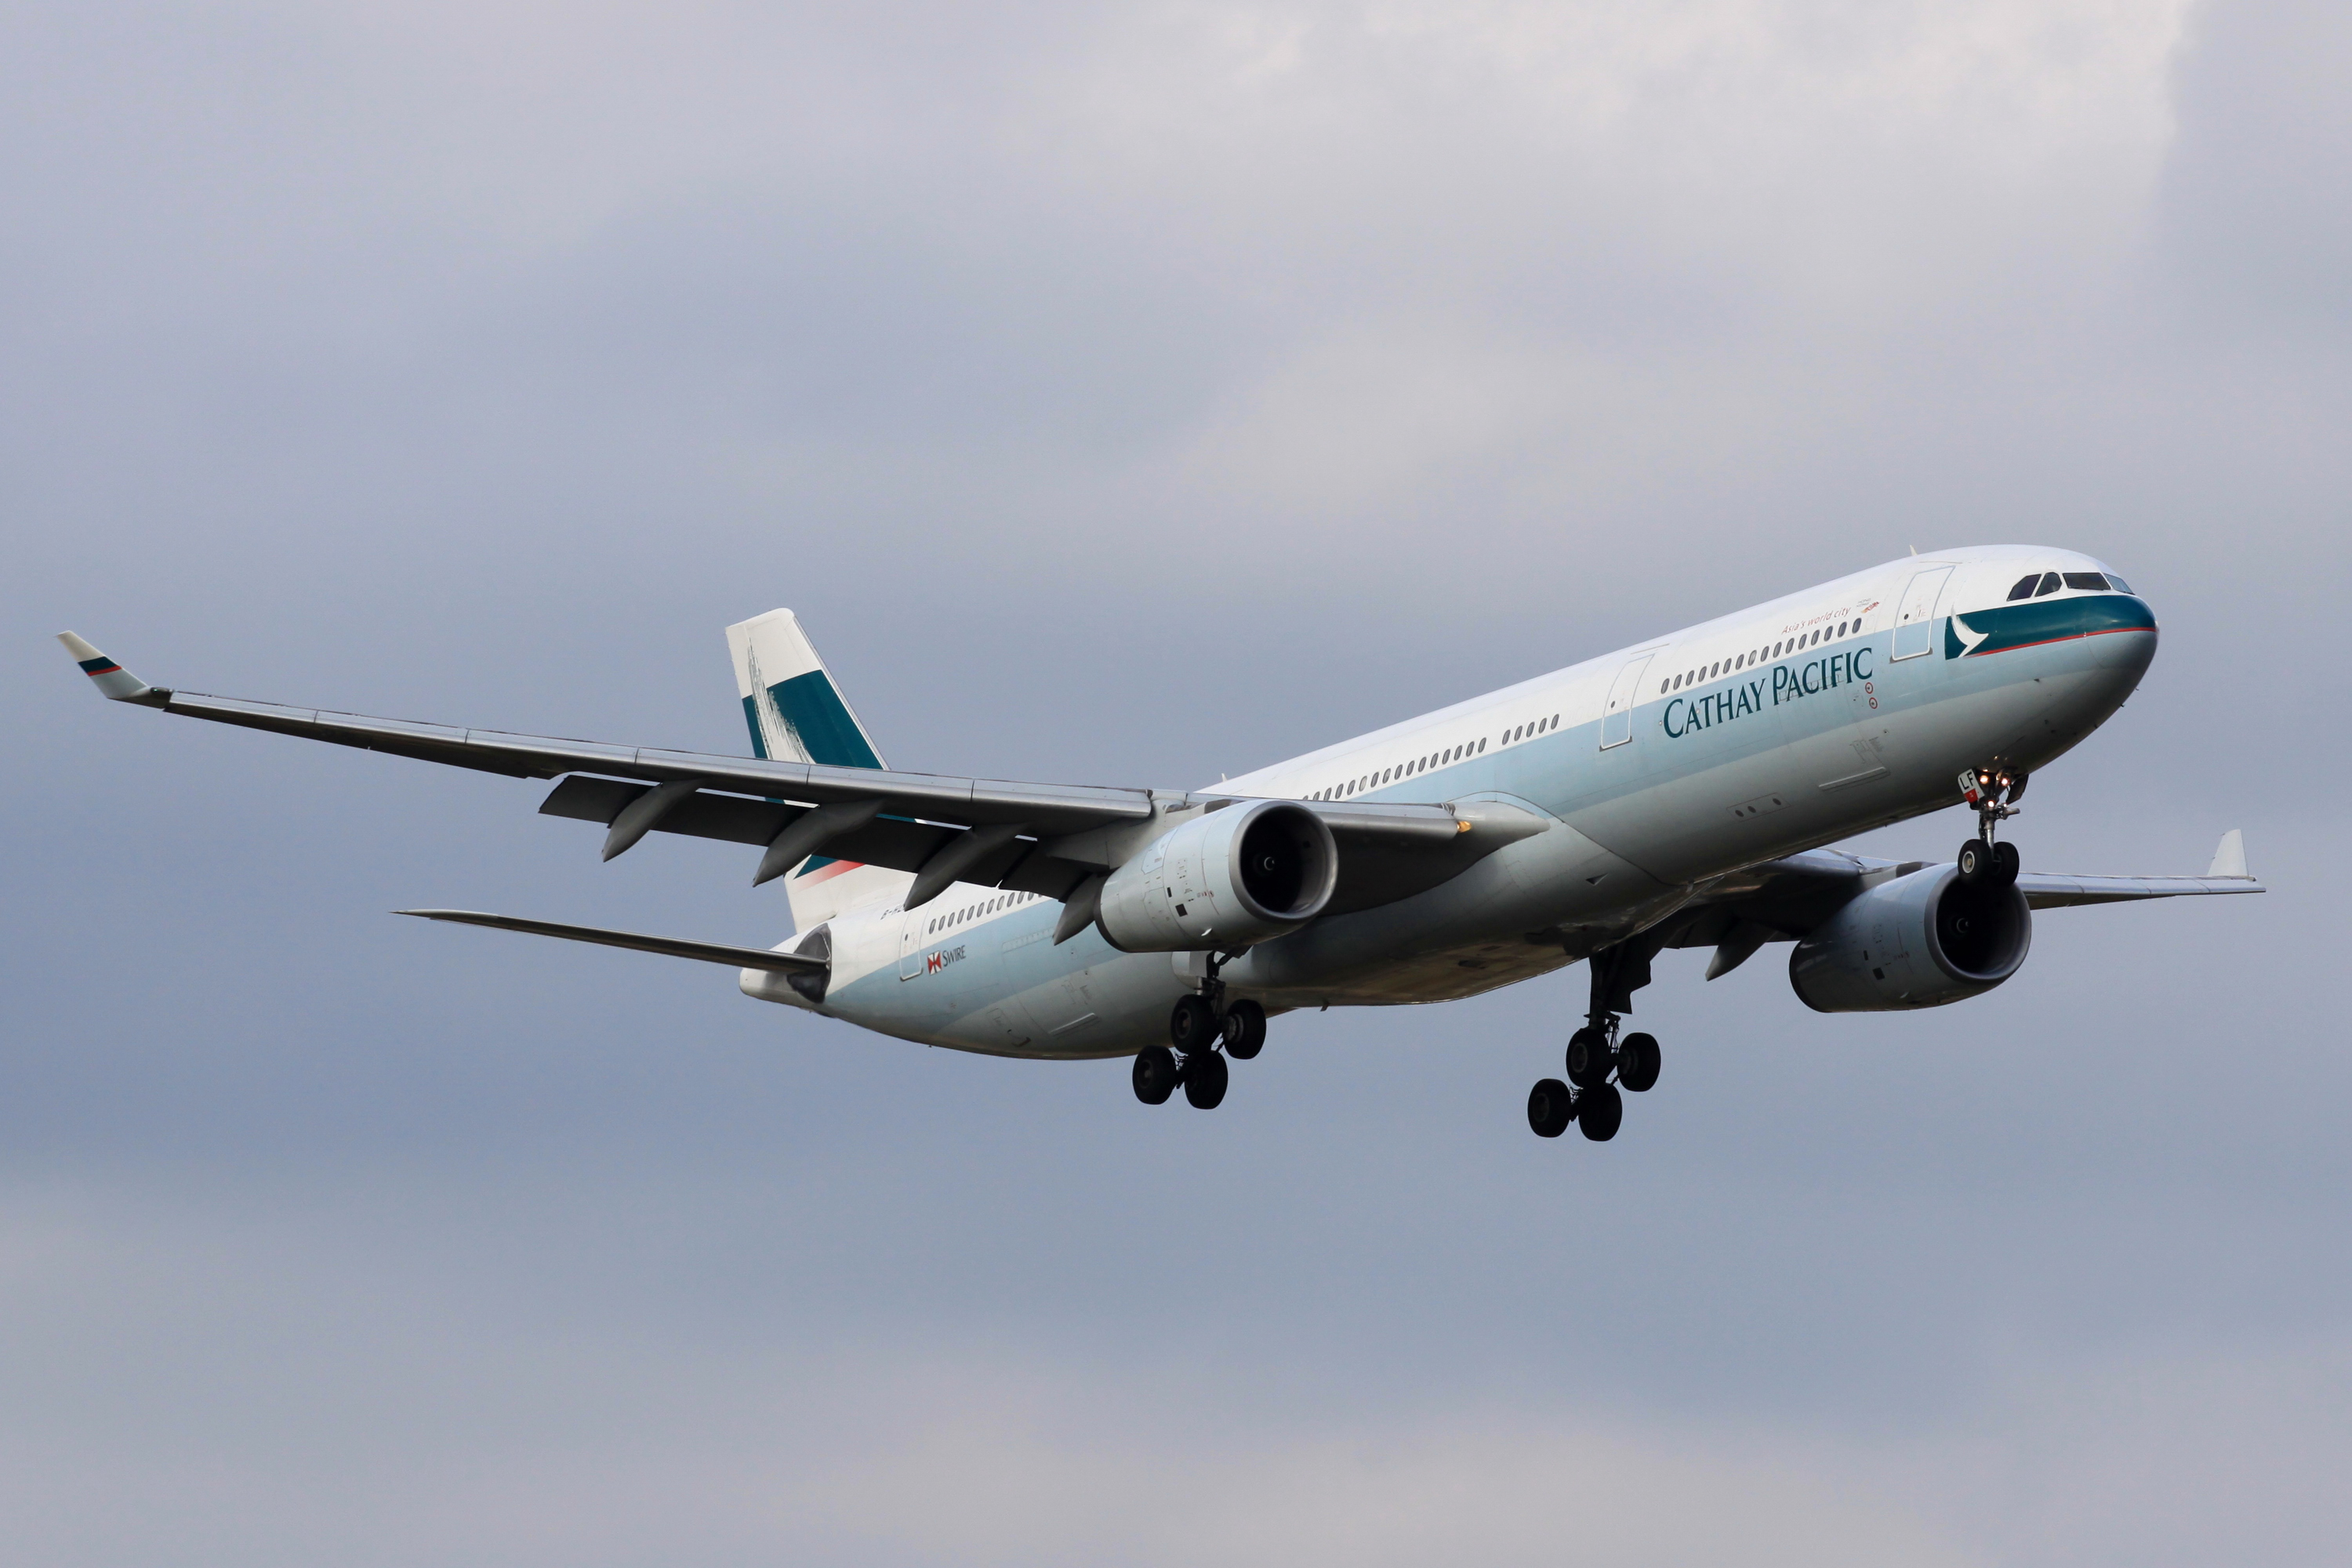 cathay_pacific_a330-300b-hlf_4085432331